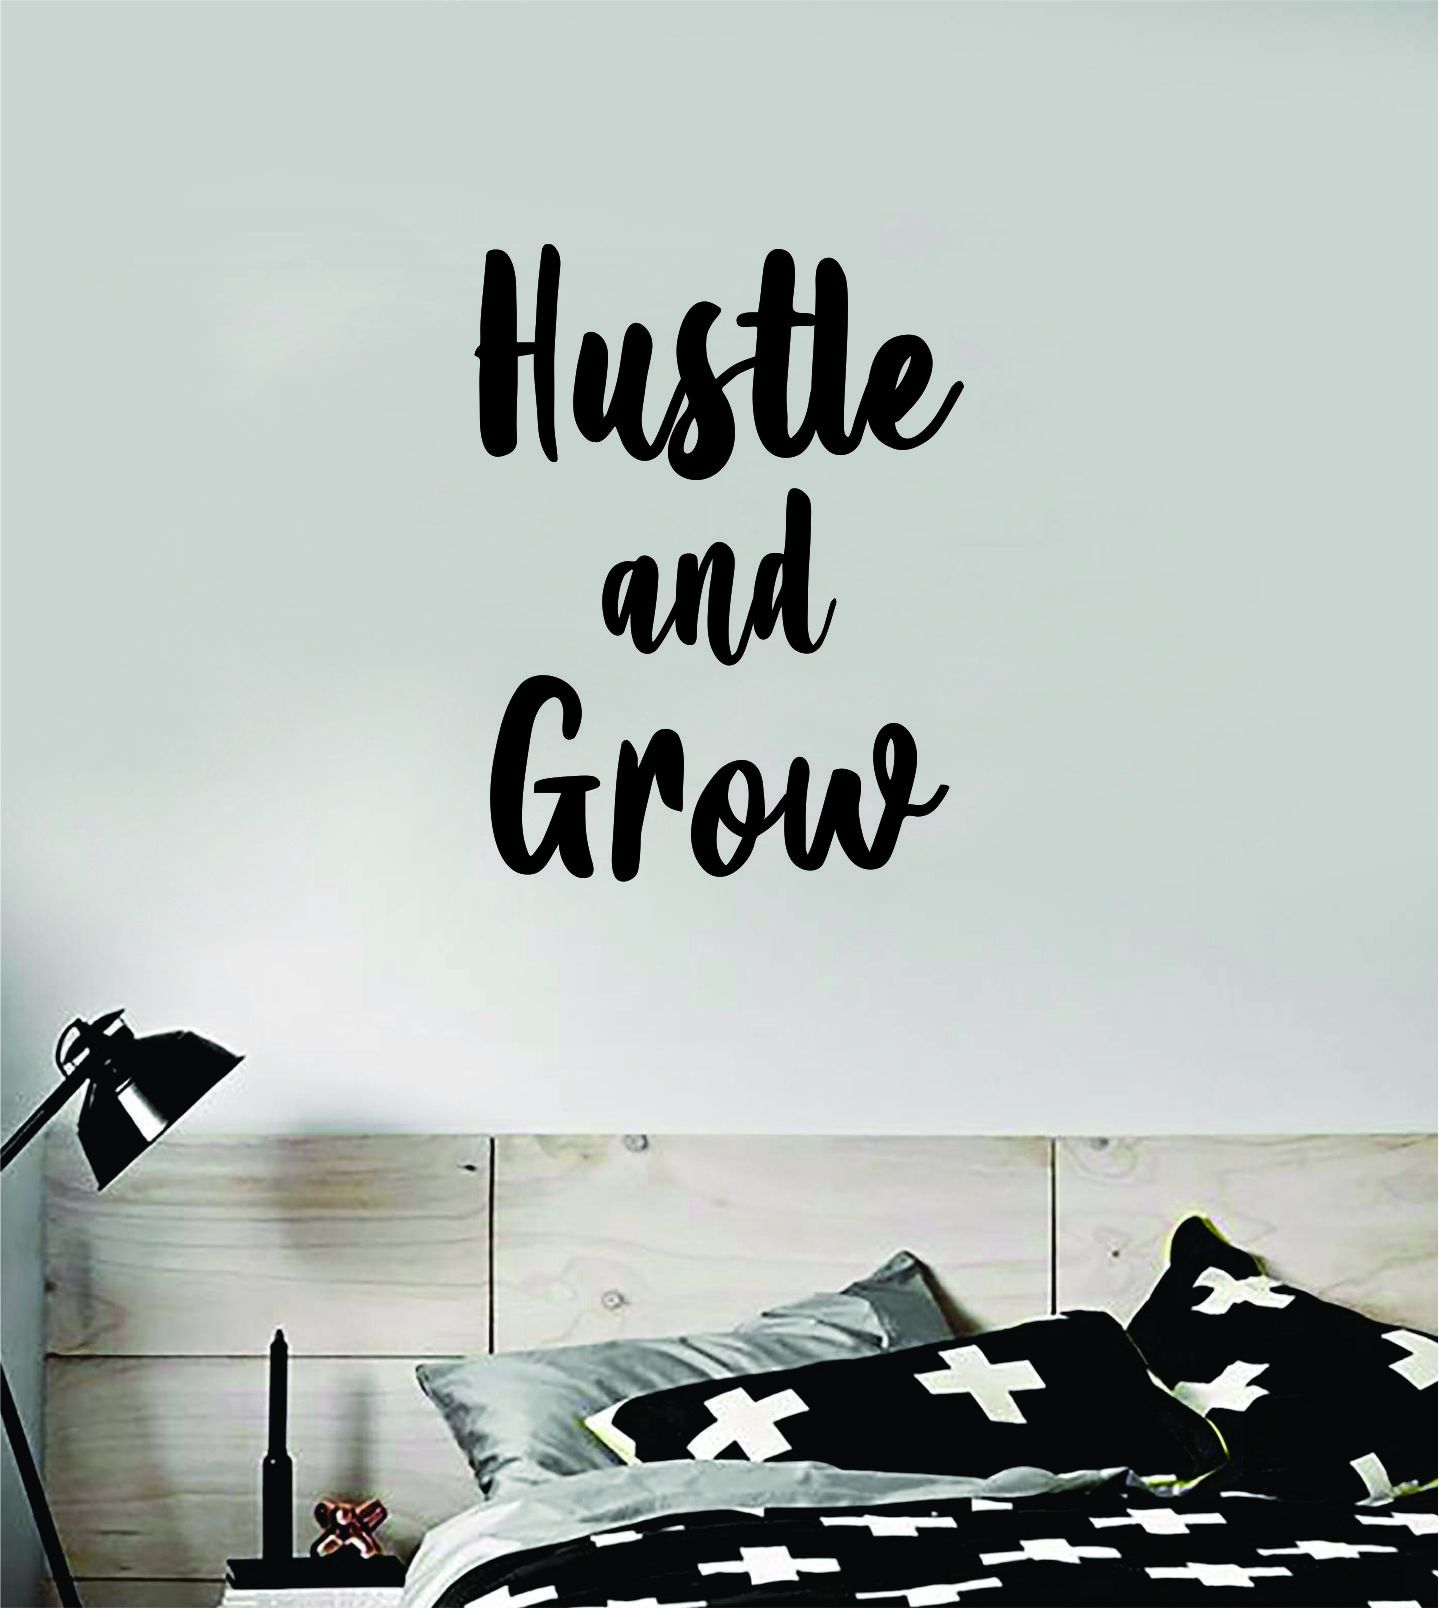 Hustle and Grow Quote Wall Decal Sticker Bedroom Home Room Art Vinyl Inspirational Motivational Teen Decor Kids Good VIbes - white